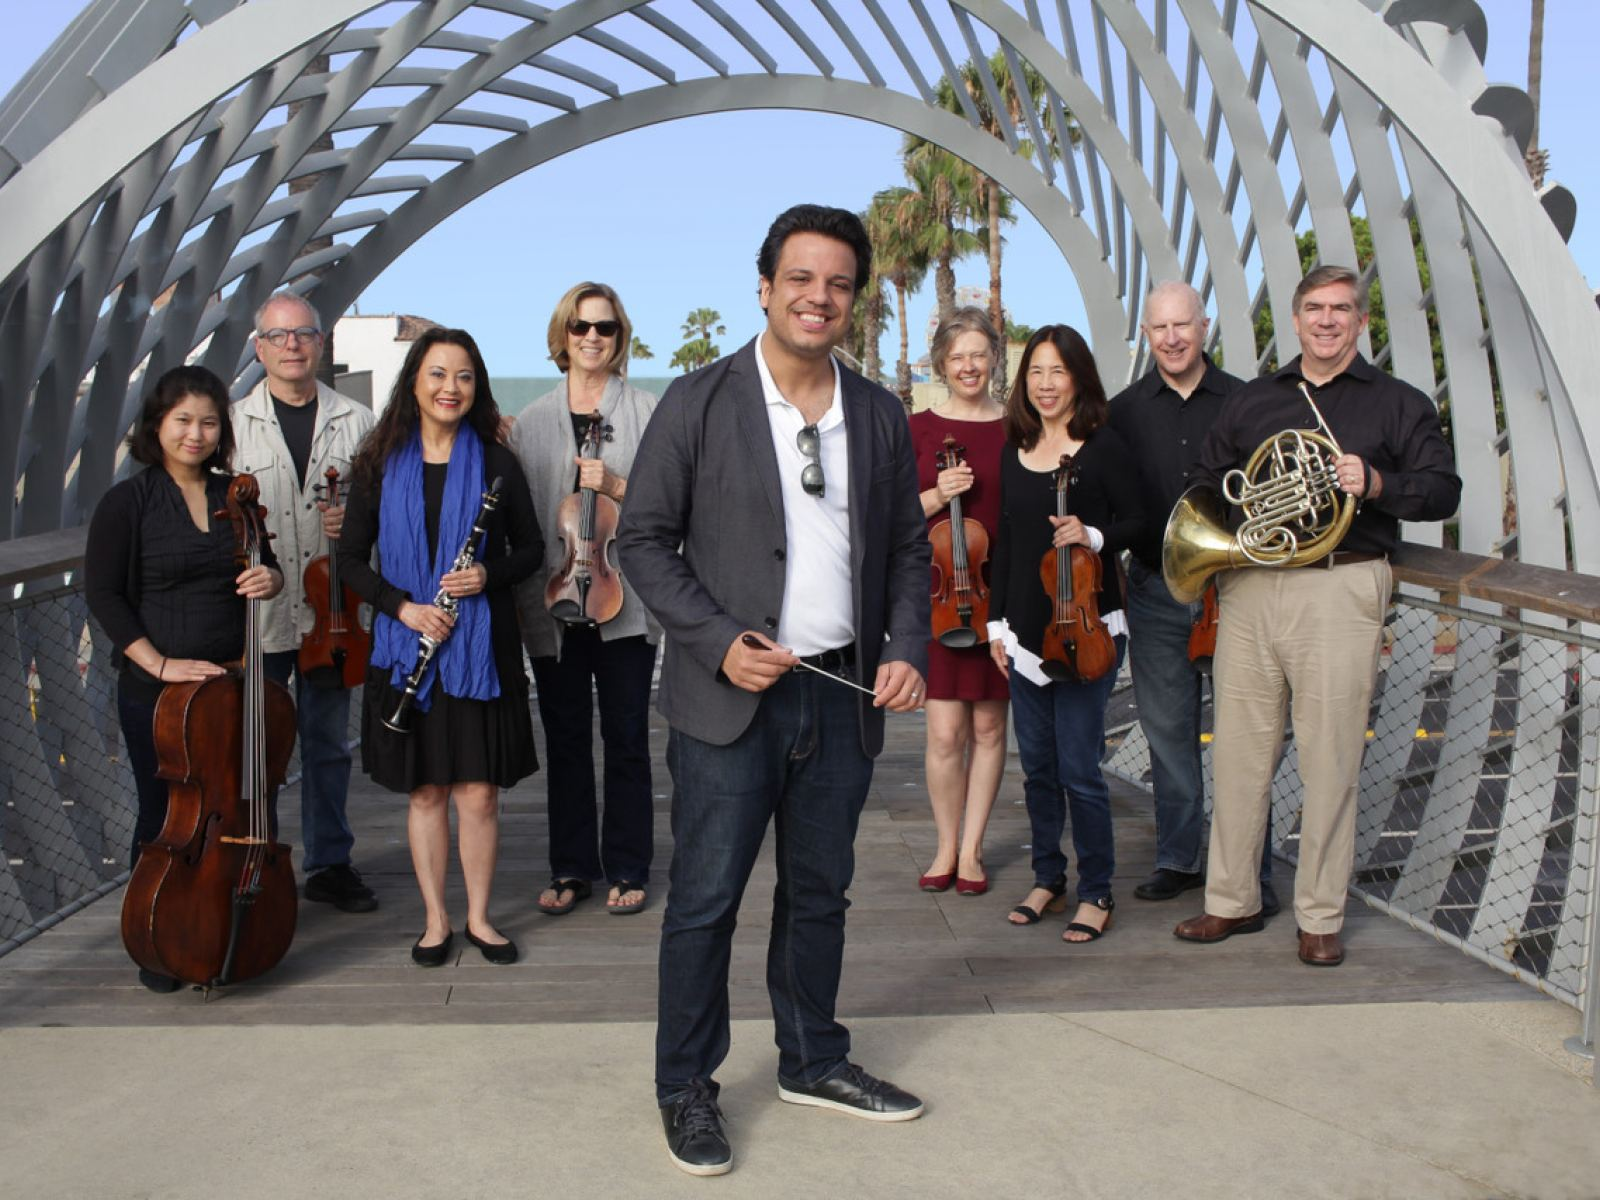 Roger Kalia and members of Orchestra Santa Monica